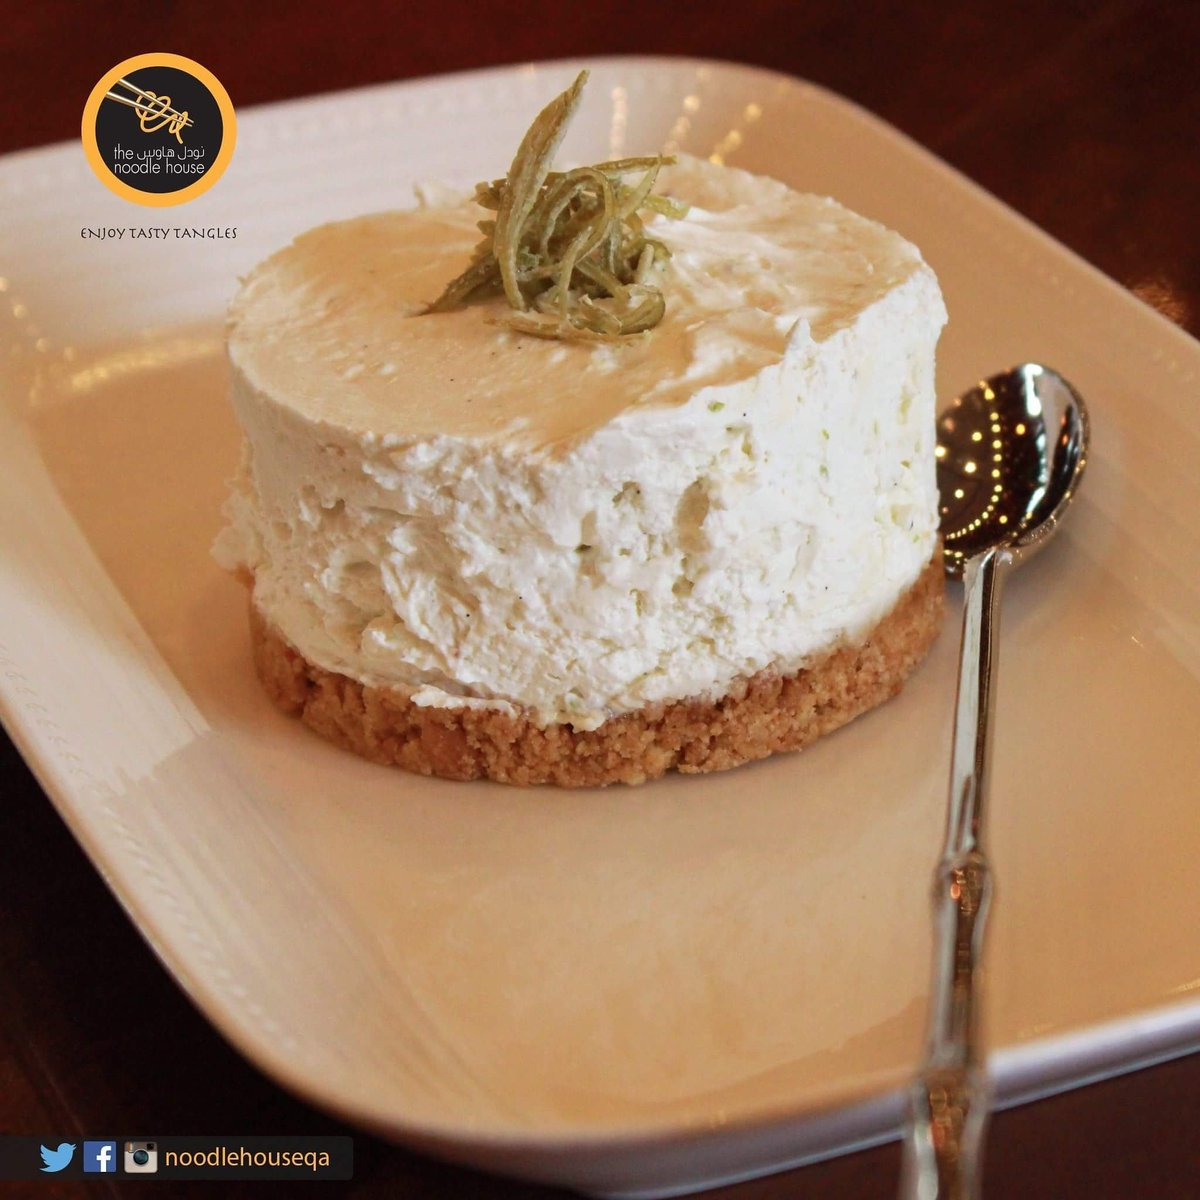 All you need now is lime and ginger cheesecake from The Noodle House ;) https://t.co/06eE5ZxMLE